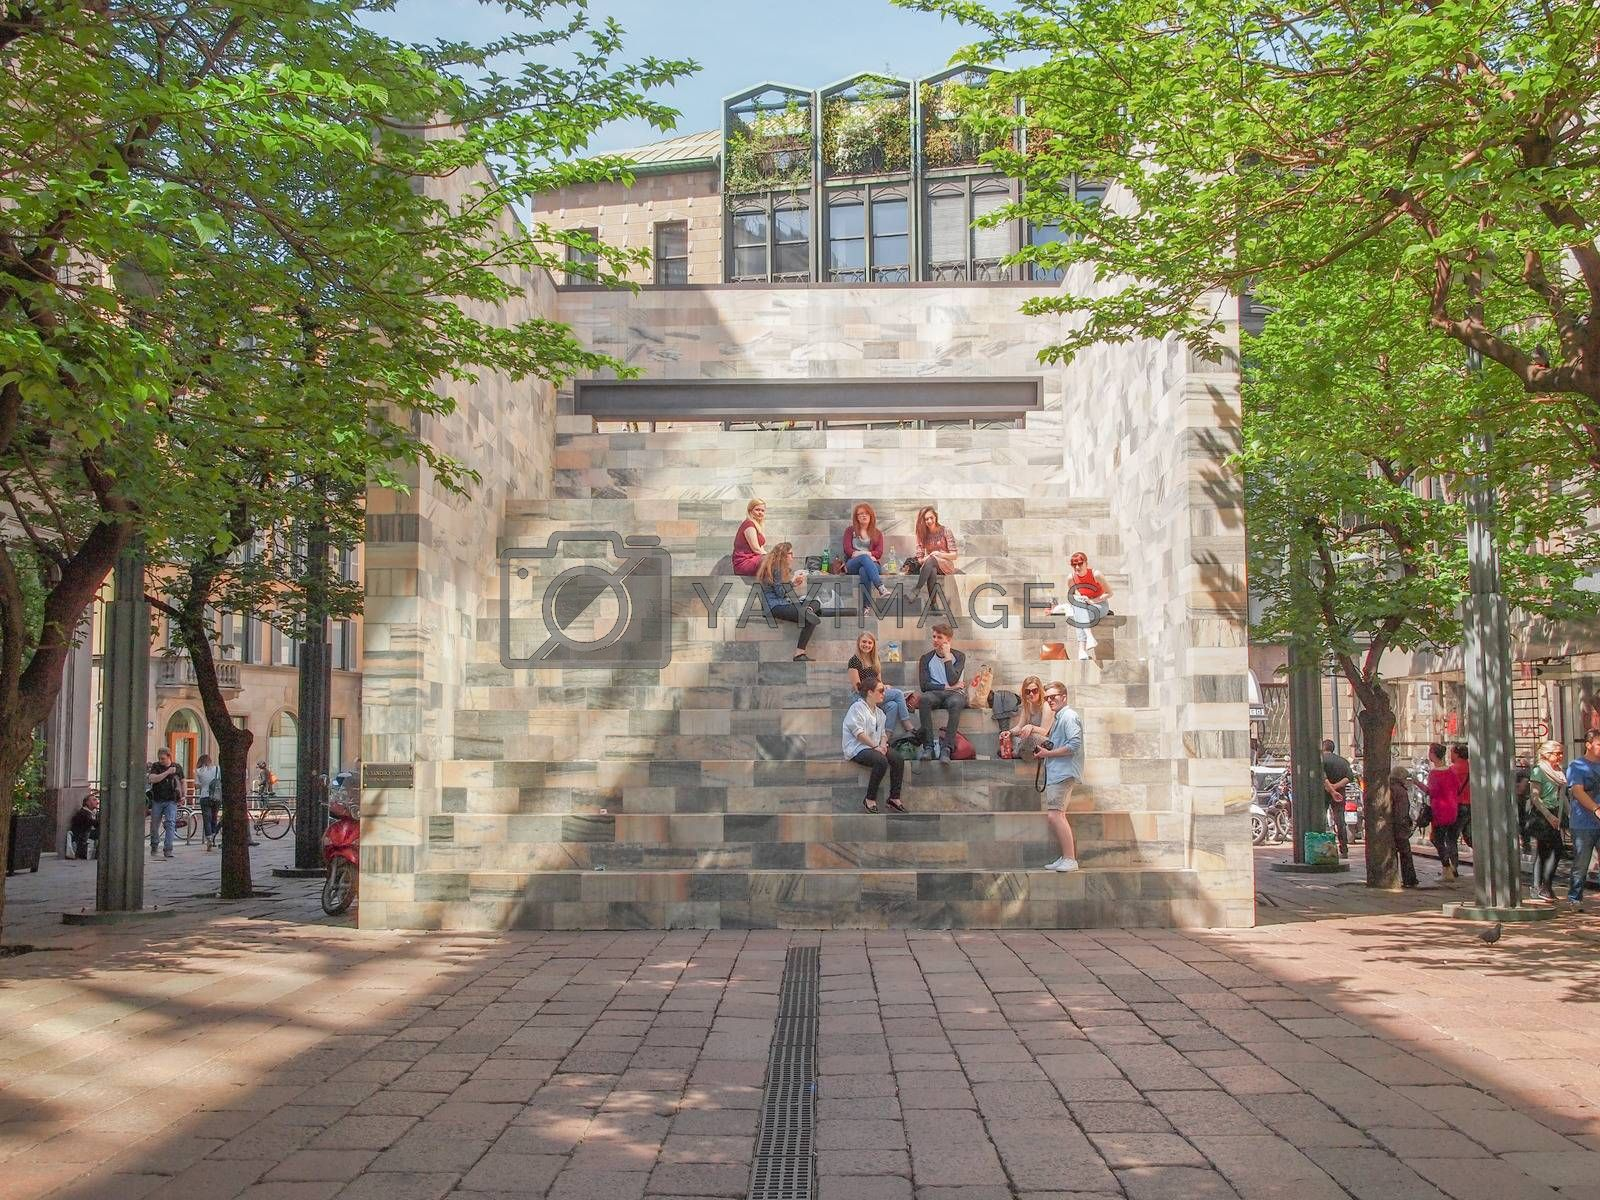 MILAN, ITALY - APRIL 10, 2014: People seated on the stairway of the Sandro Pertini monument in Milan dedicated to the former Italian President designed by architect Aldo Rossi in 1988